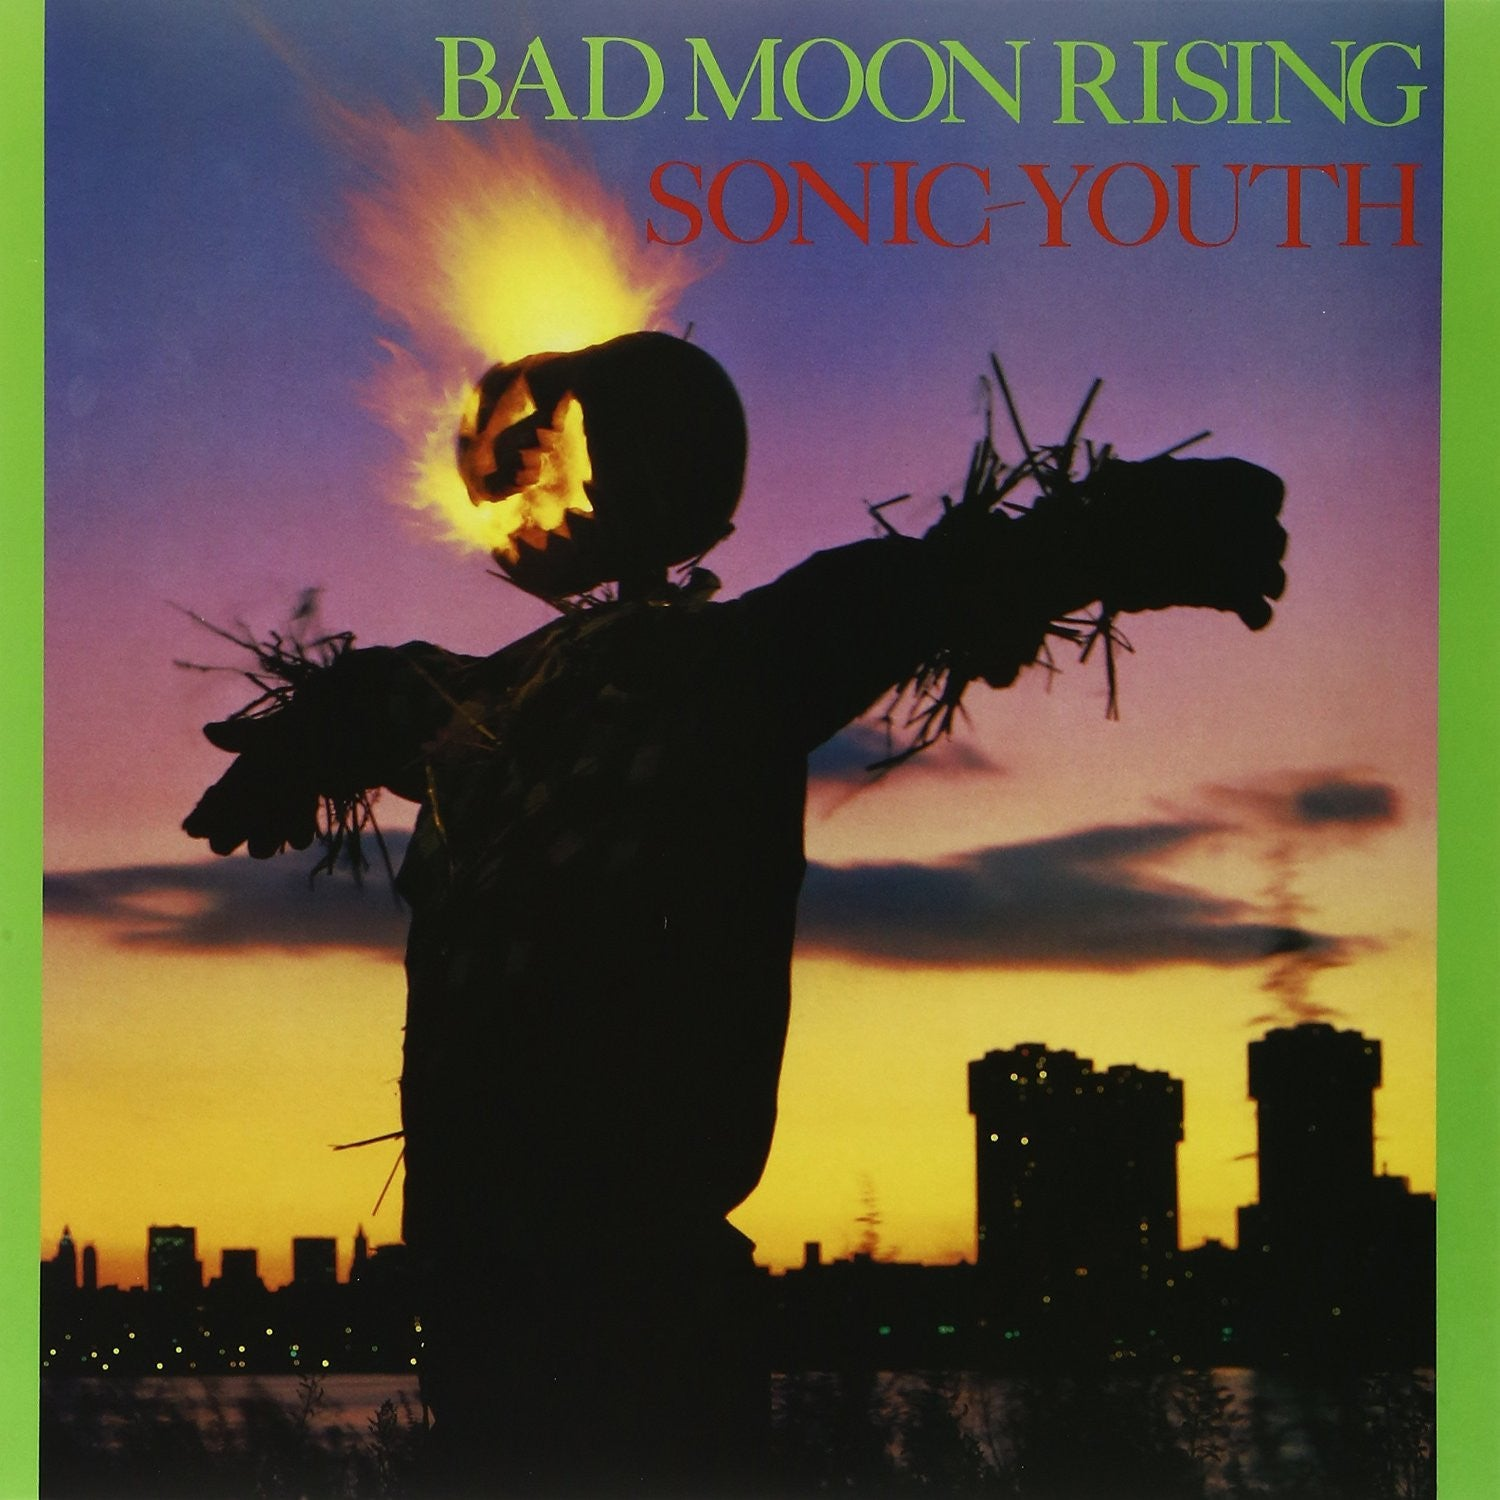 Sonic Youth - Bad Moon Rising, LP Vinyl (reissue) - The Giant Peach